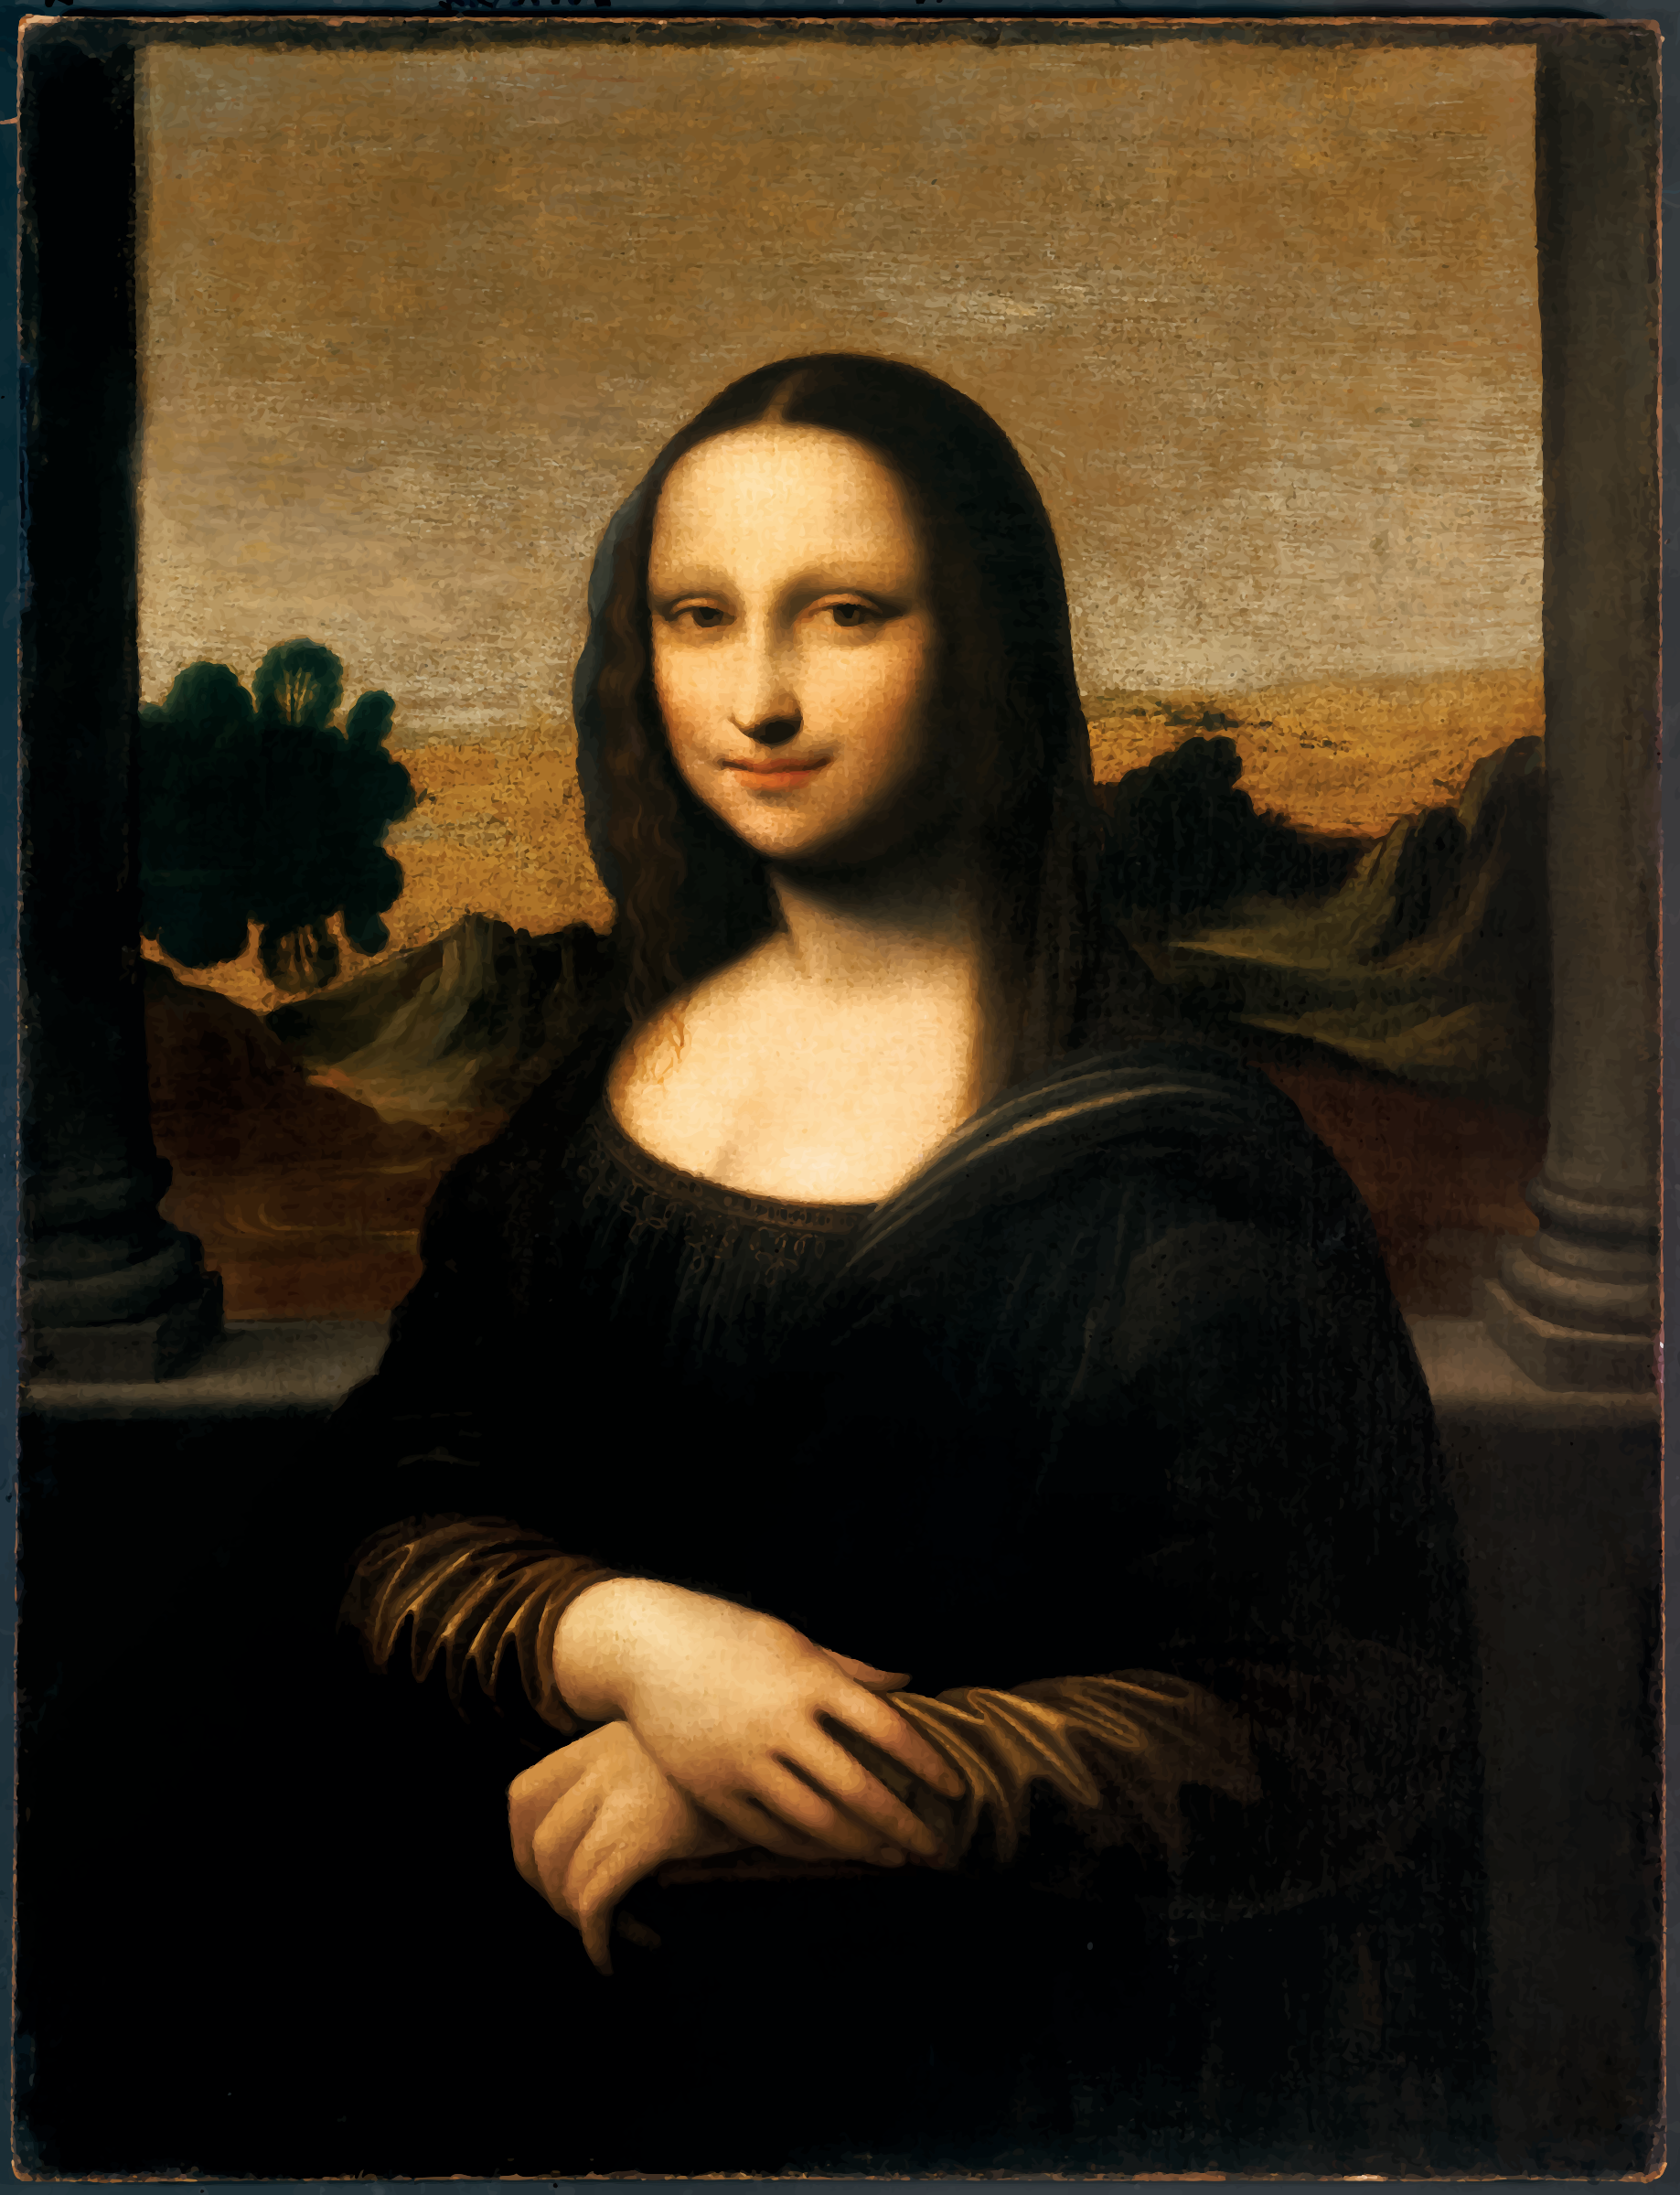 Isleworth Mona Lisa by Firkin